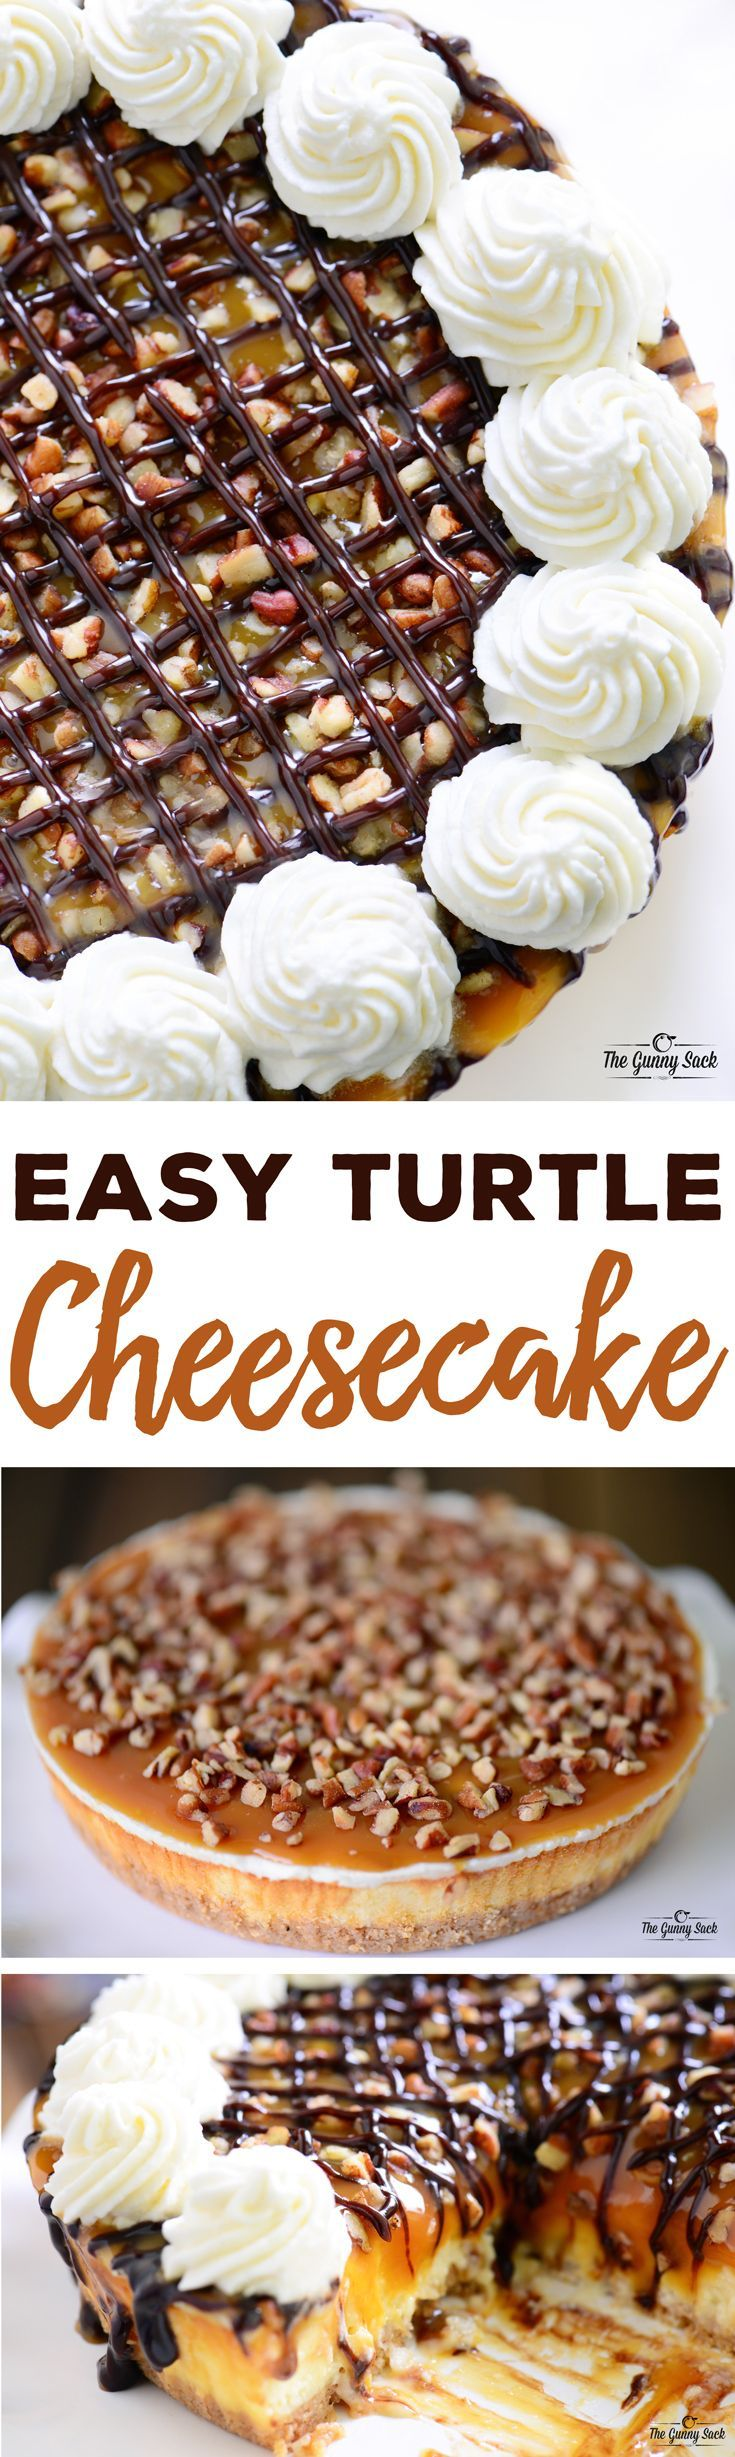 Easy turtle cheesecake recipe made from a Sara Lee Original Cream Cheesecake. Top it with chocolate, caramel, pecans and whipped cream. Great for the holidays! #UniquelyYours Sponsored by Sara Lee®